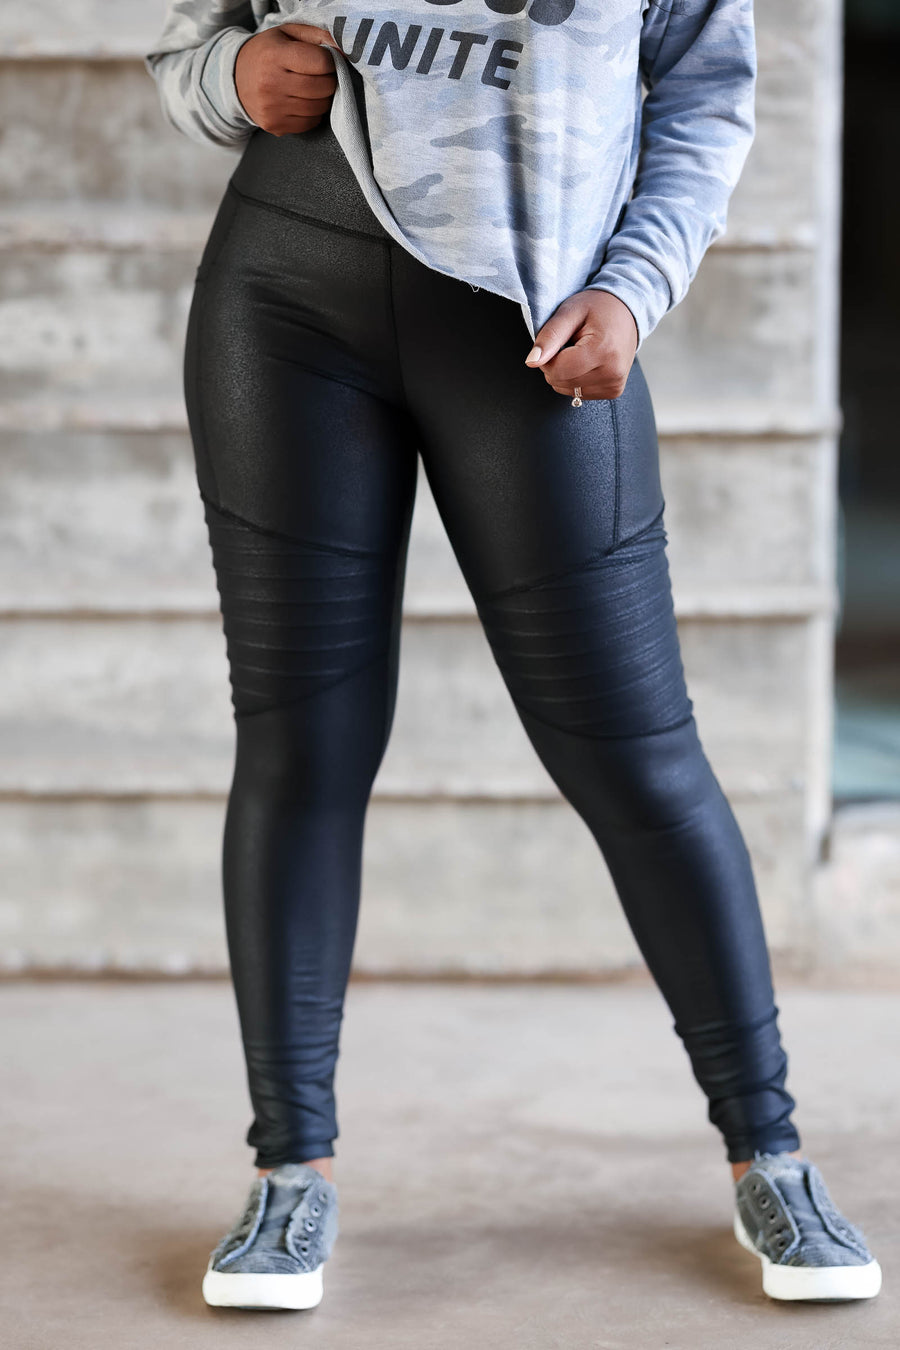 Thanx Me Later Foil Moto Leggings - Black womens trendy leggings with Moto panels and tummy control, closet candy side